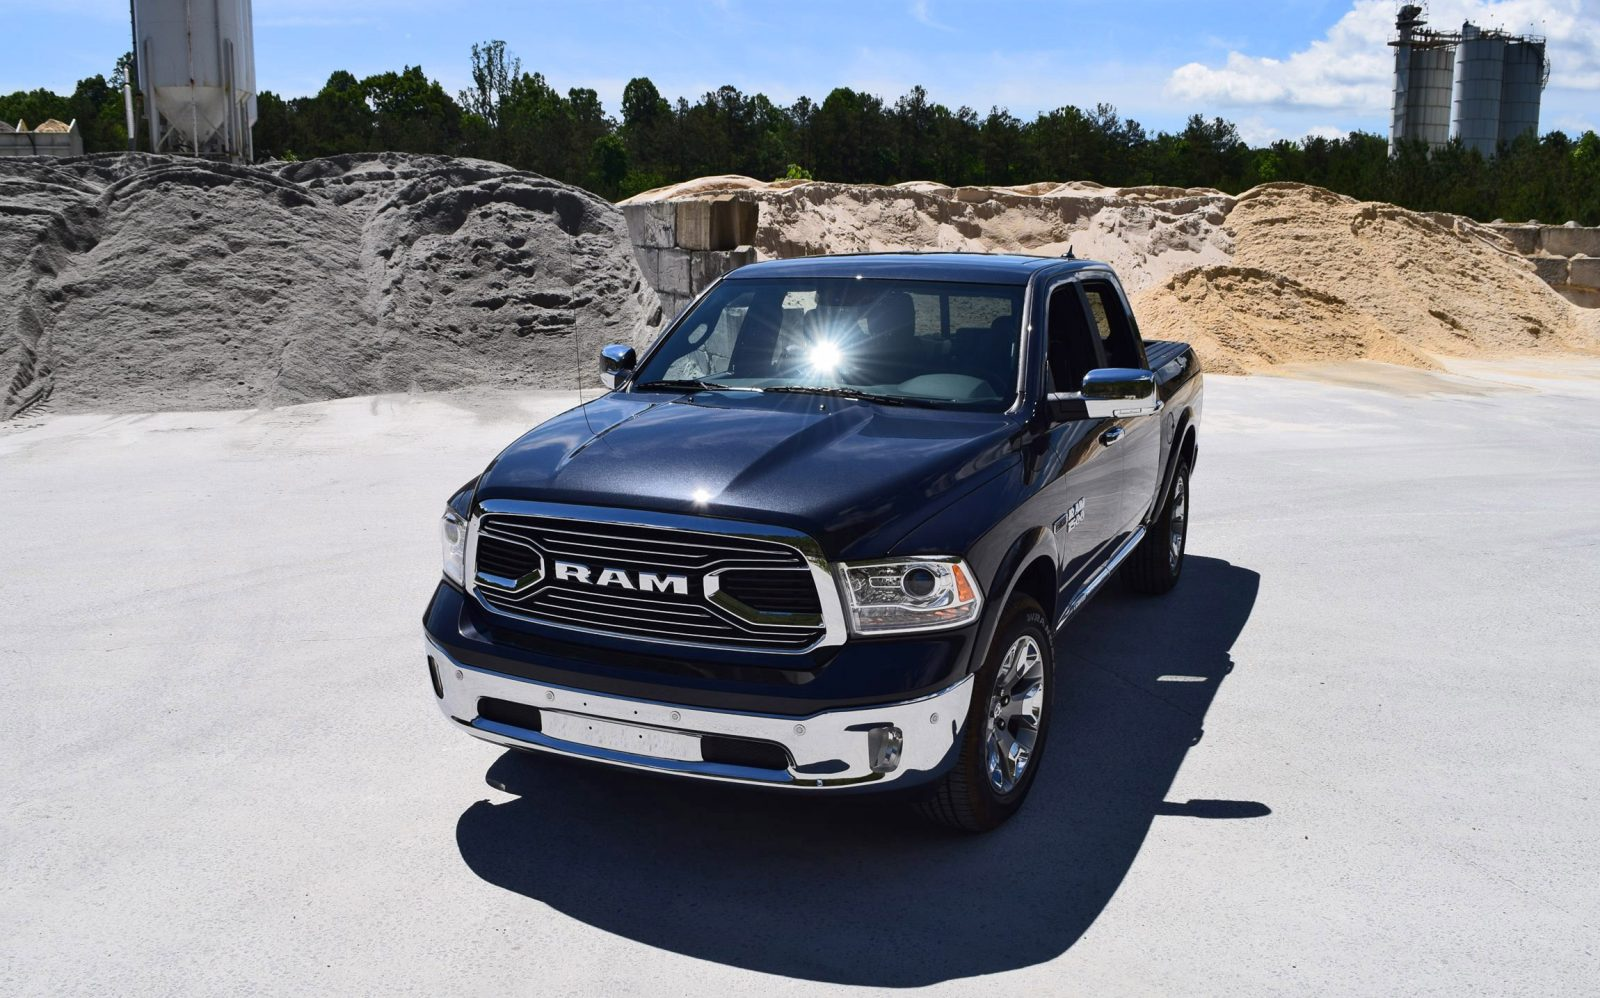 Ram 1500 Ecodiesel Review >> First Drive - 2016 RAM 1500 LIMITED EcoDiesel + VIDEO Walkaround and 70 Pics